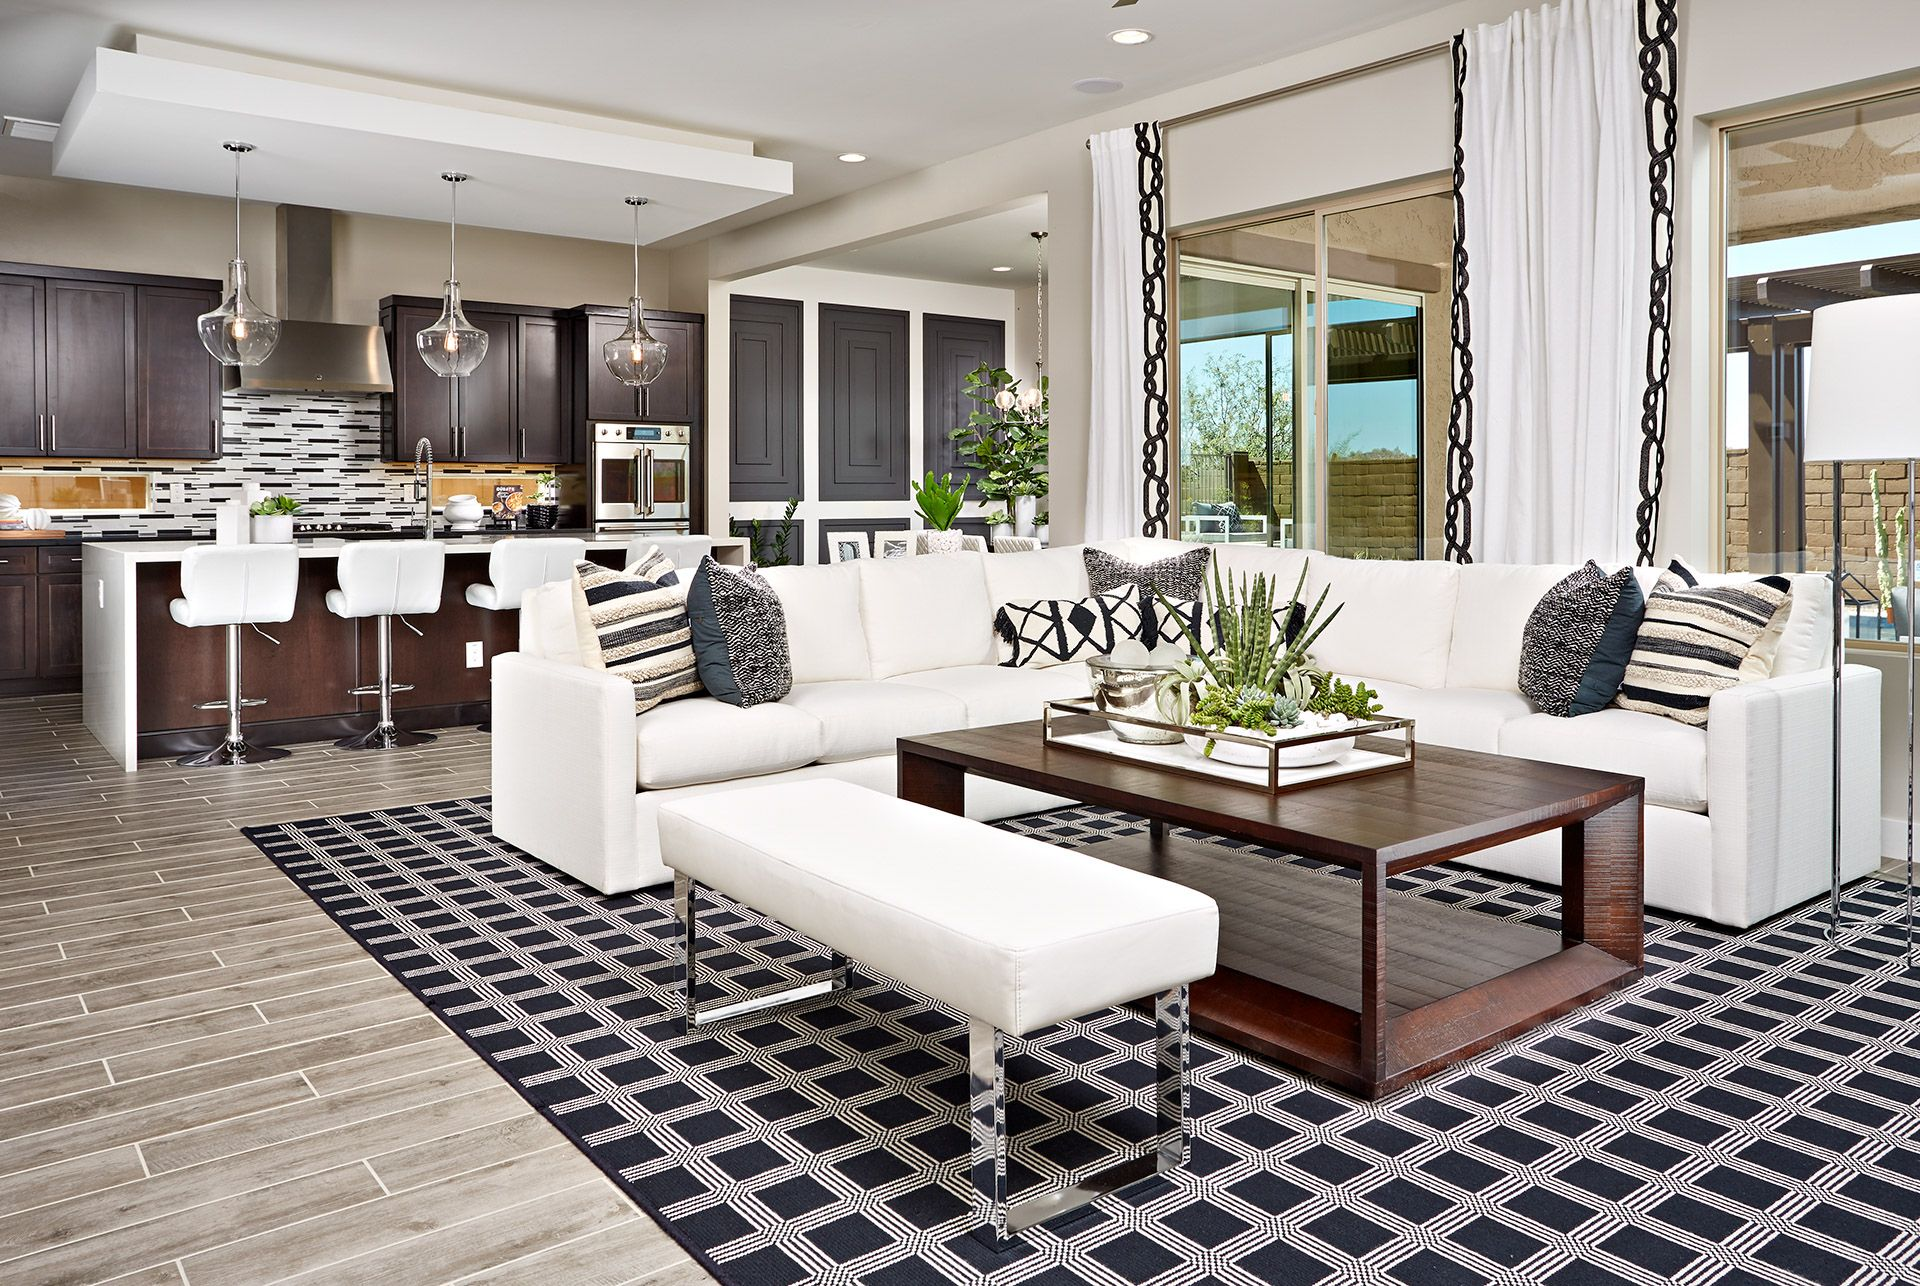 Taylor Morrison Homes at Sky Crossing Shire Floor Plan